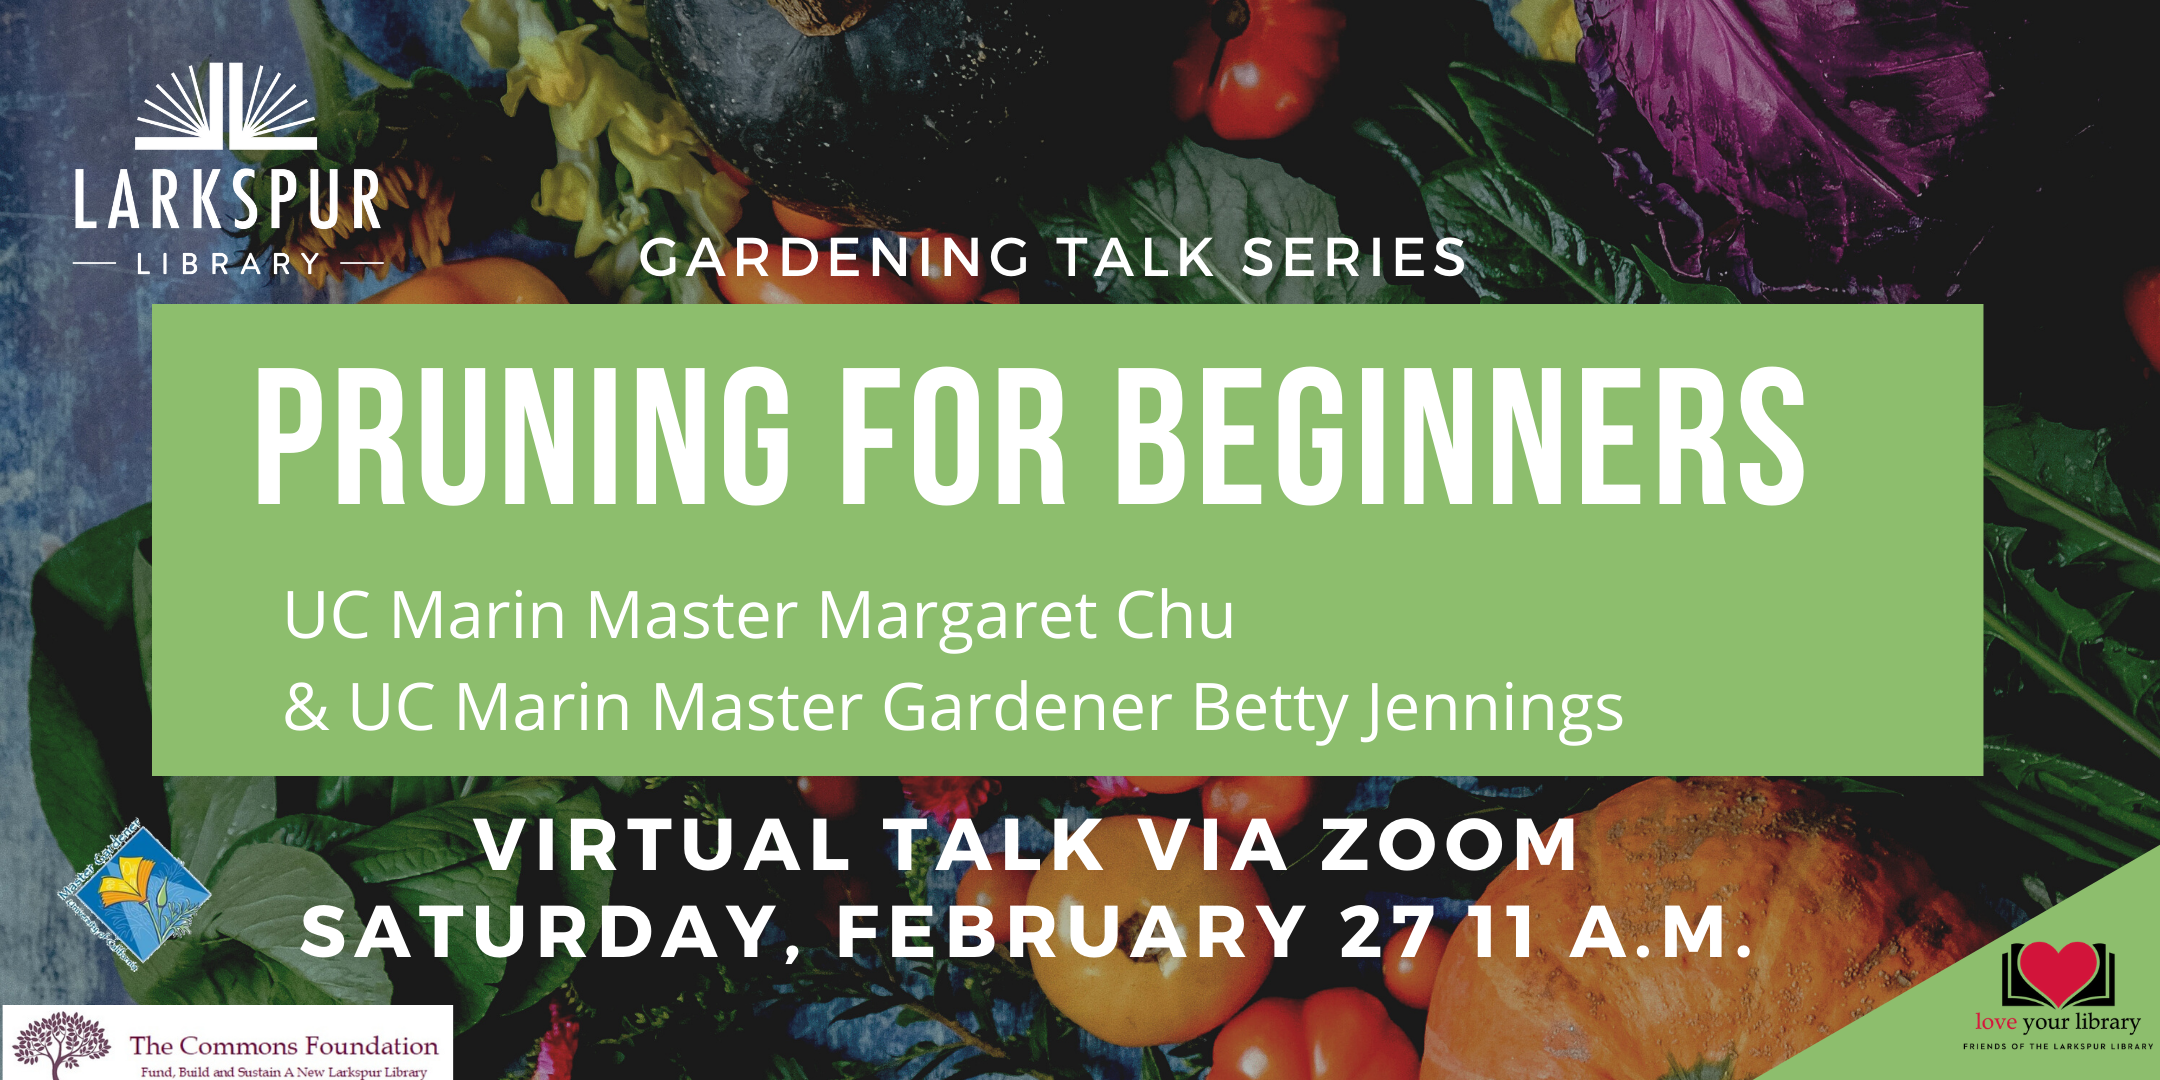 Eventbrite Pruning for Beginners Saturday February 27 at 11 AM